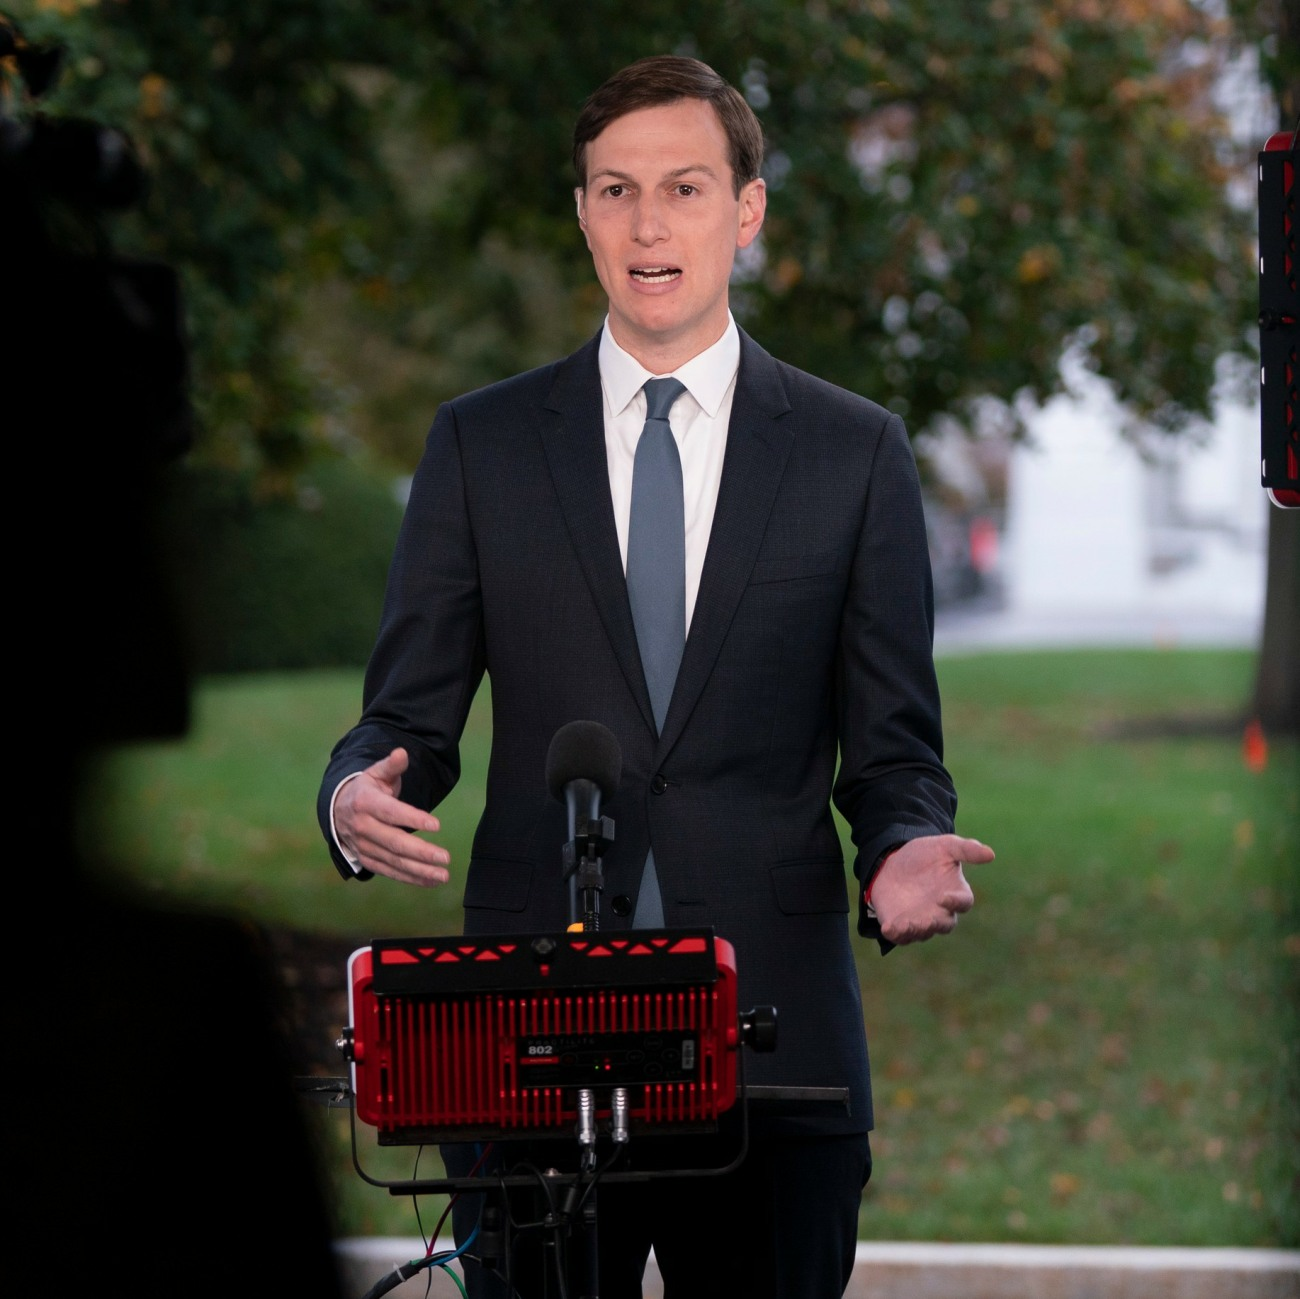 Slumlord nepotism doll Jared Kushner: Black people must 'want to be successful'